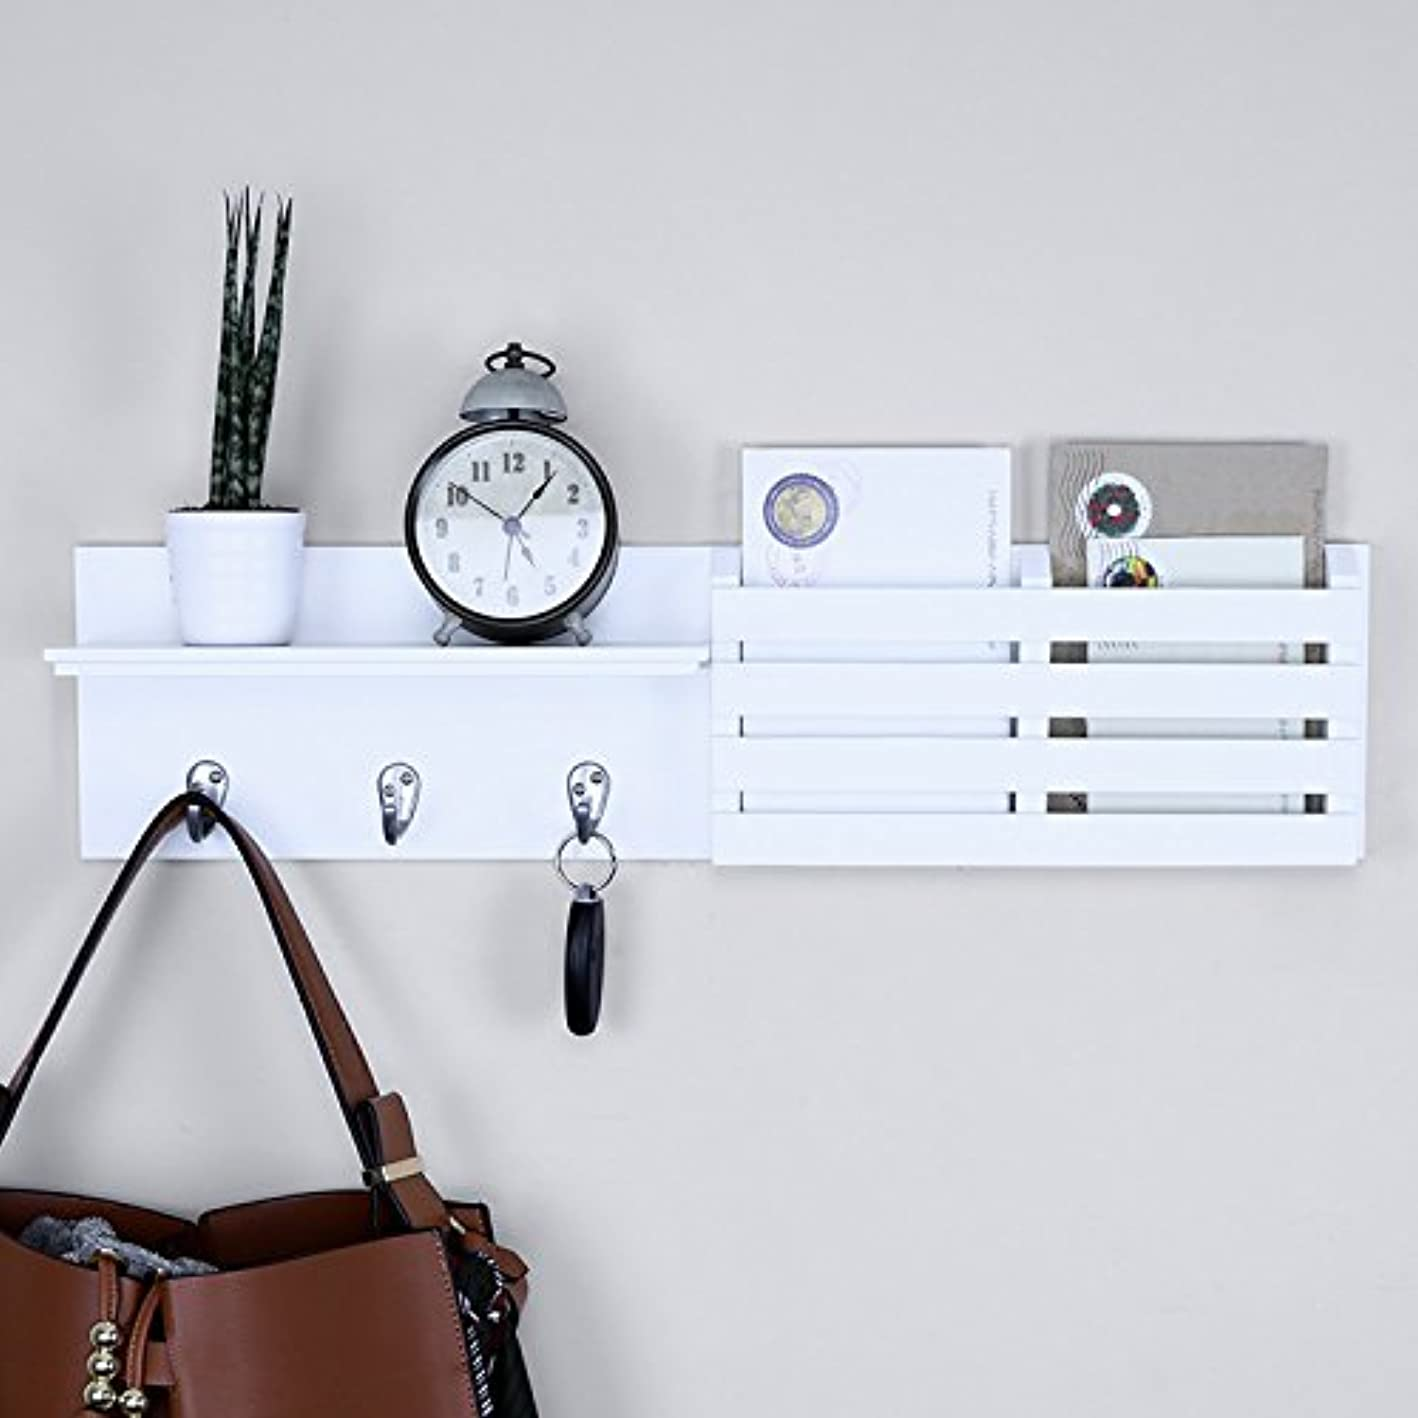 Ballucci Mail Holder and Coat Key Rack Wall Shelf with 3 Hooks, 24